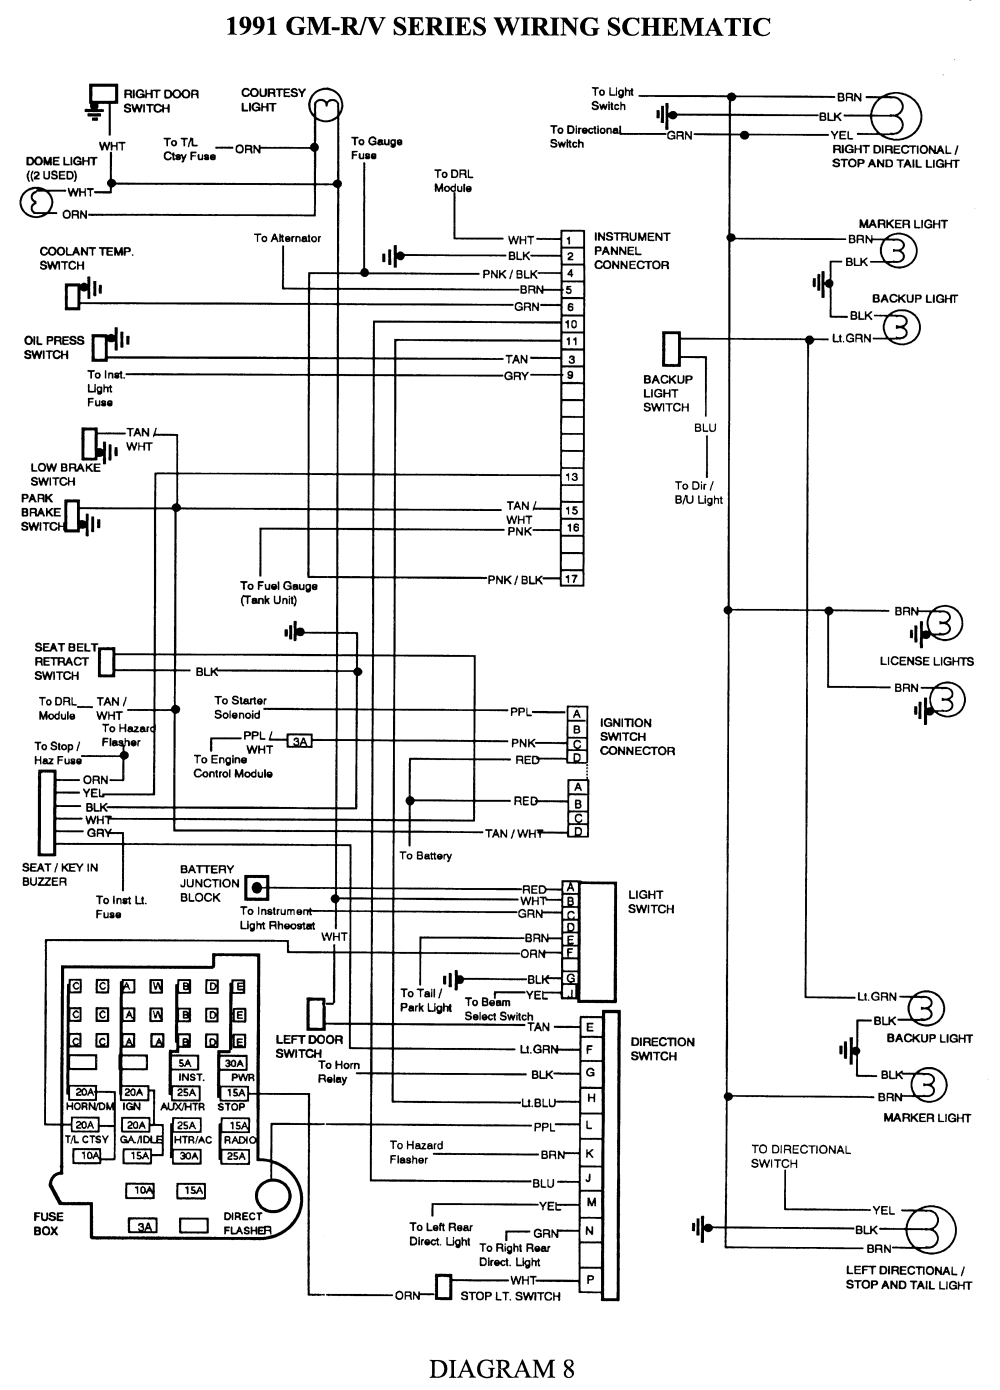 DIAGRAM] 96 Blazer Stereo Wiring Diagram FULL Version HD Quality Wiring  Diagram - FAULTYWIRINGPDF.ABCIMMOBILIER-58.FRWiring And Fuse Database